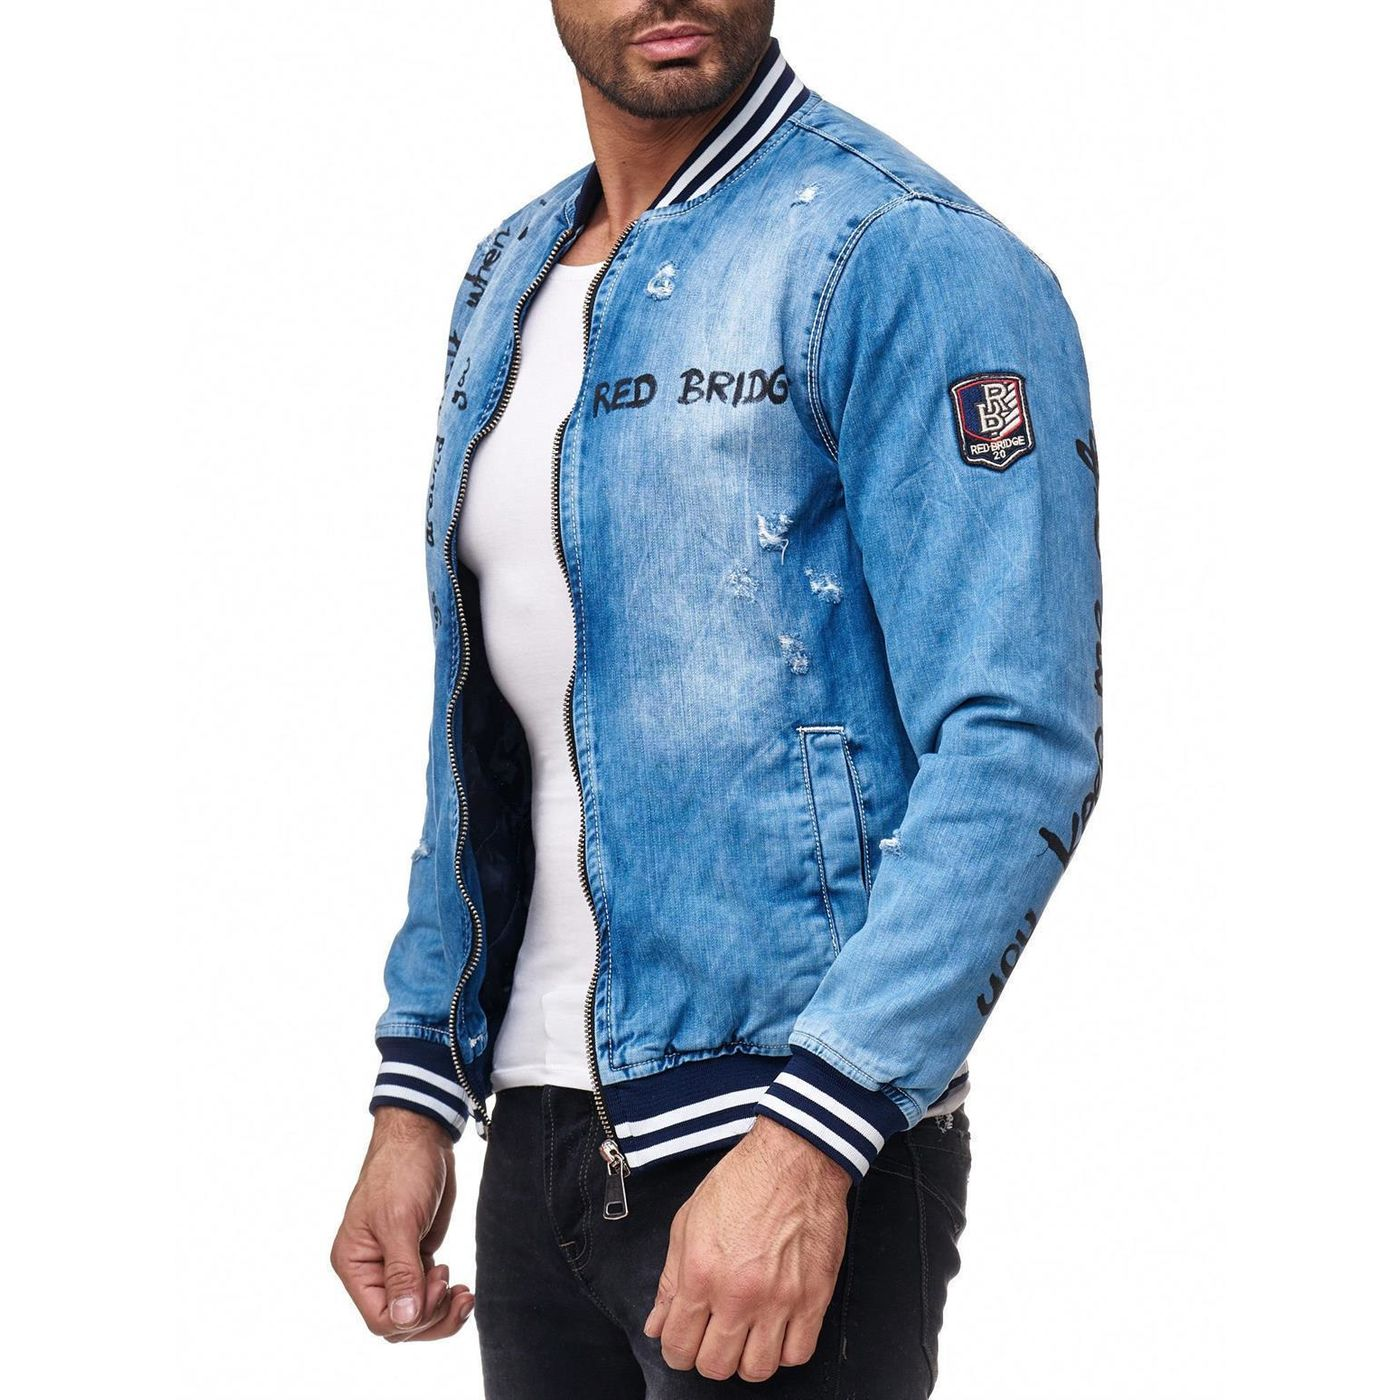 Red Bridge Men Jeans Jacket College Style Transition Jacket with Lettering  and Patch Blue Denim Blue d2cd9921d6